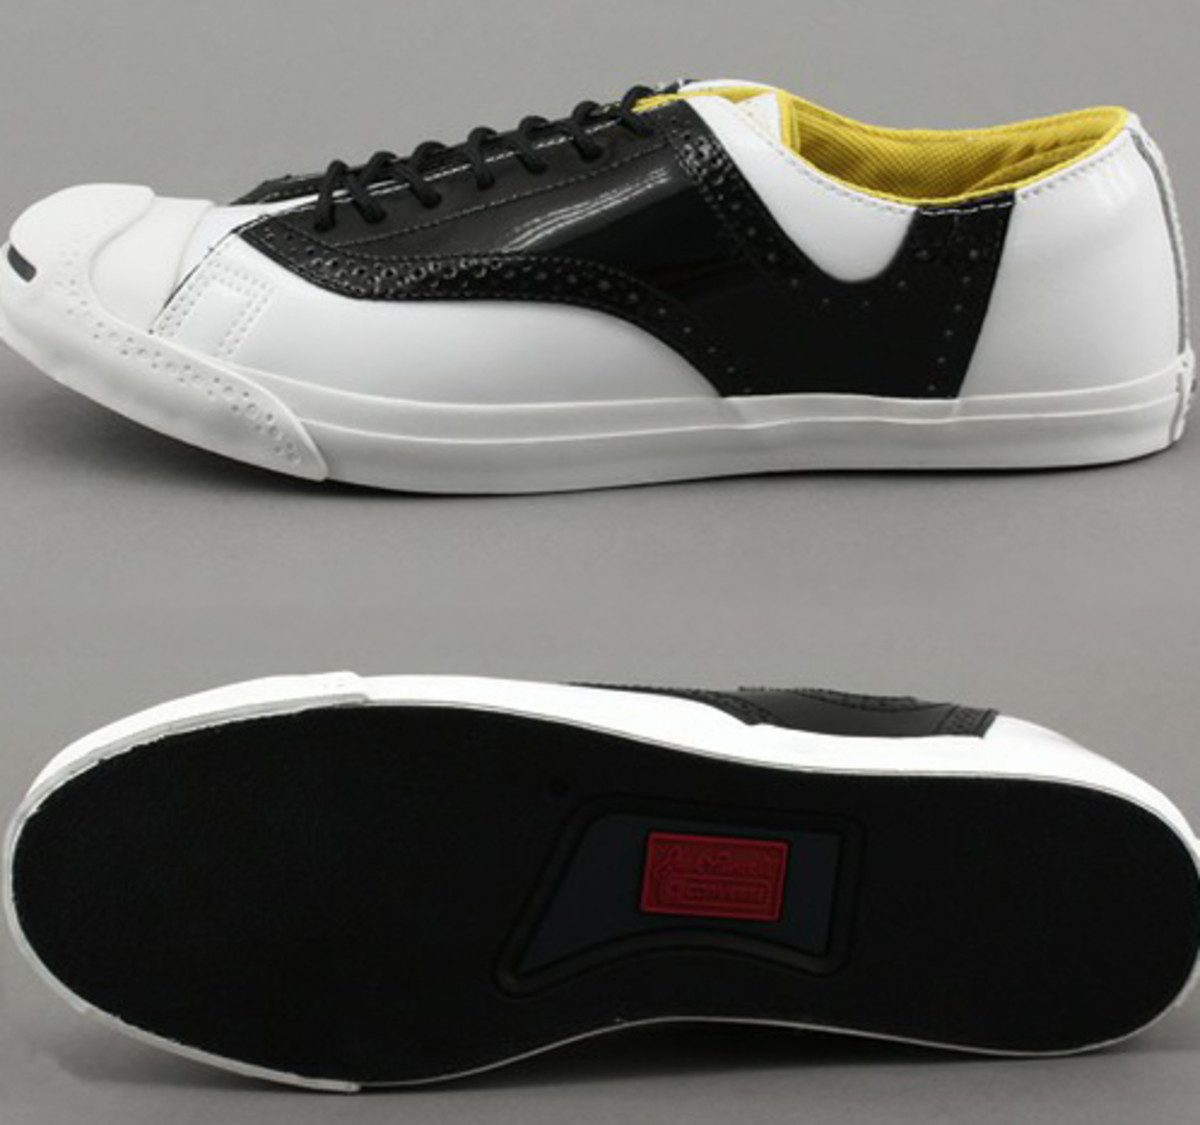 converse-dress-code-jack-purcell-s-mdln-031